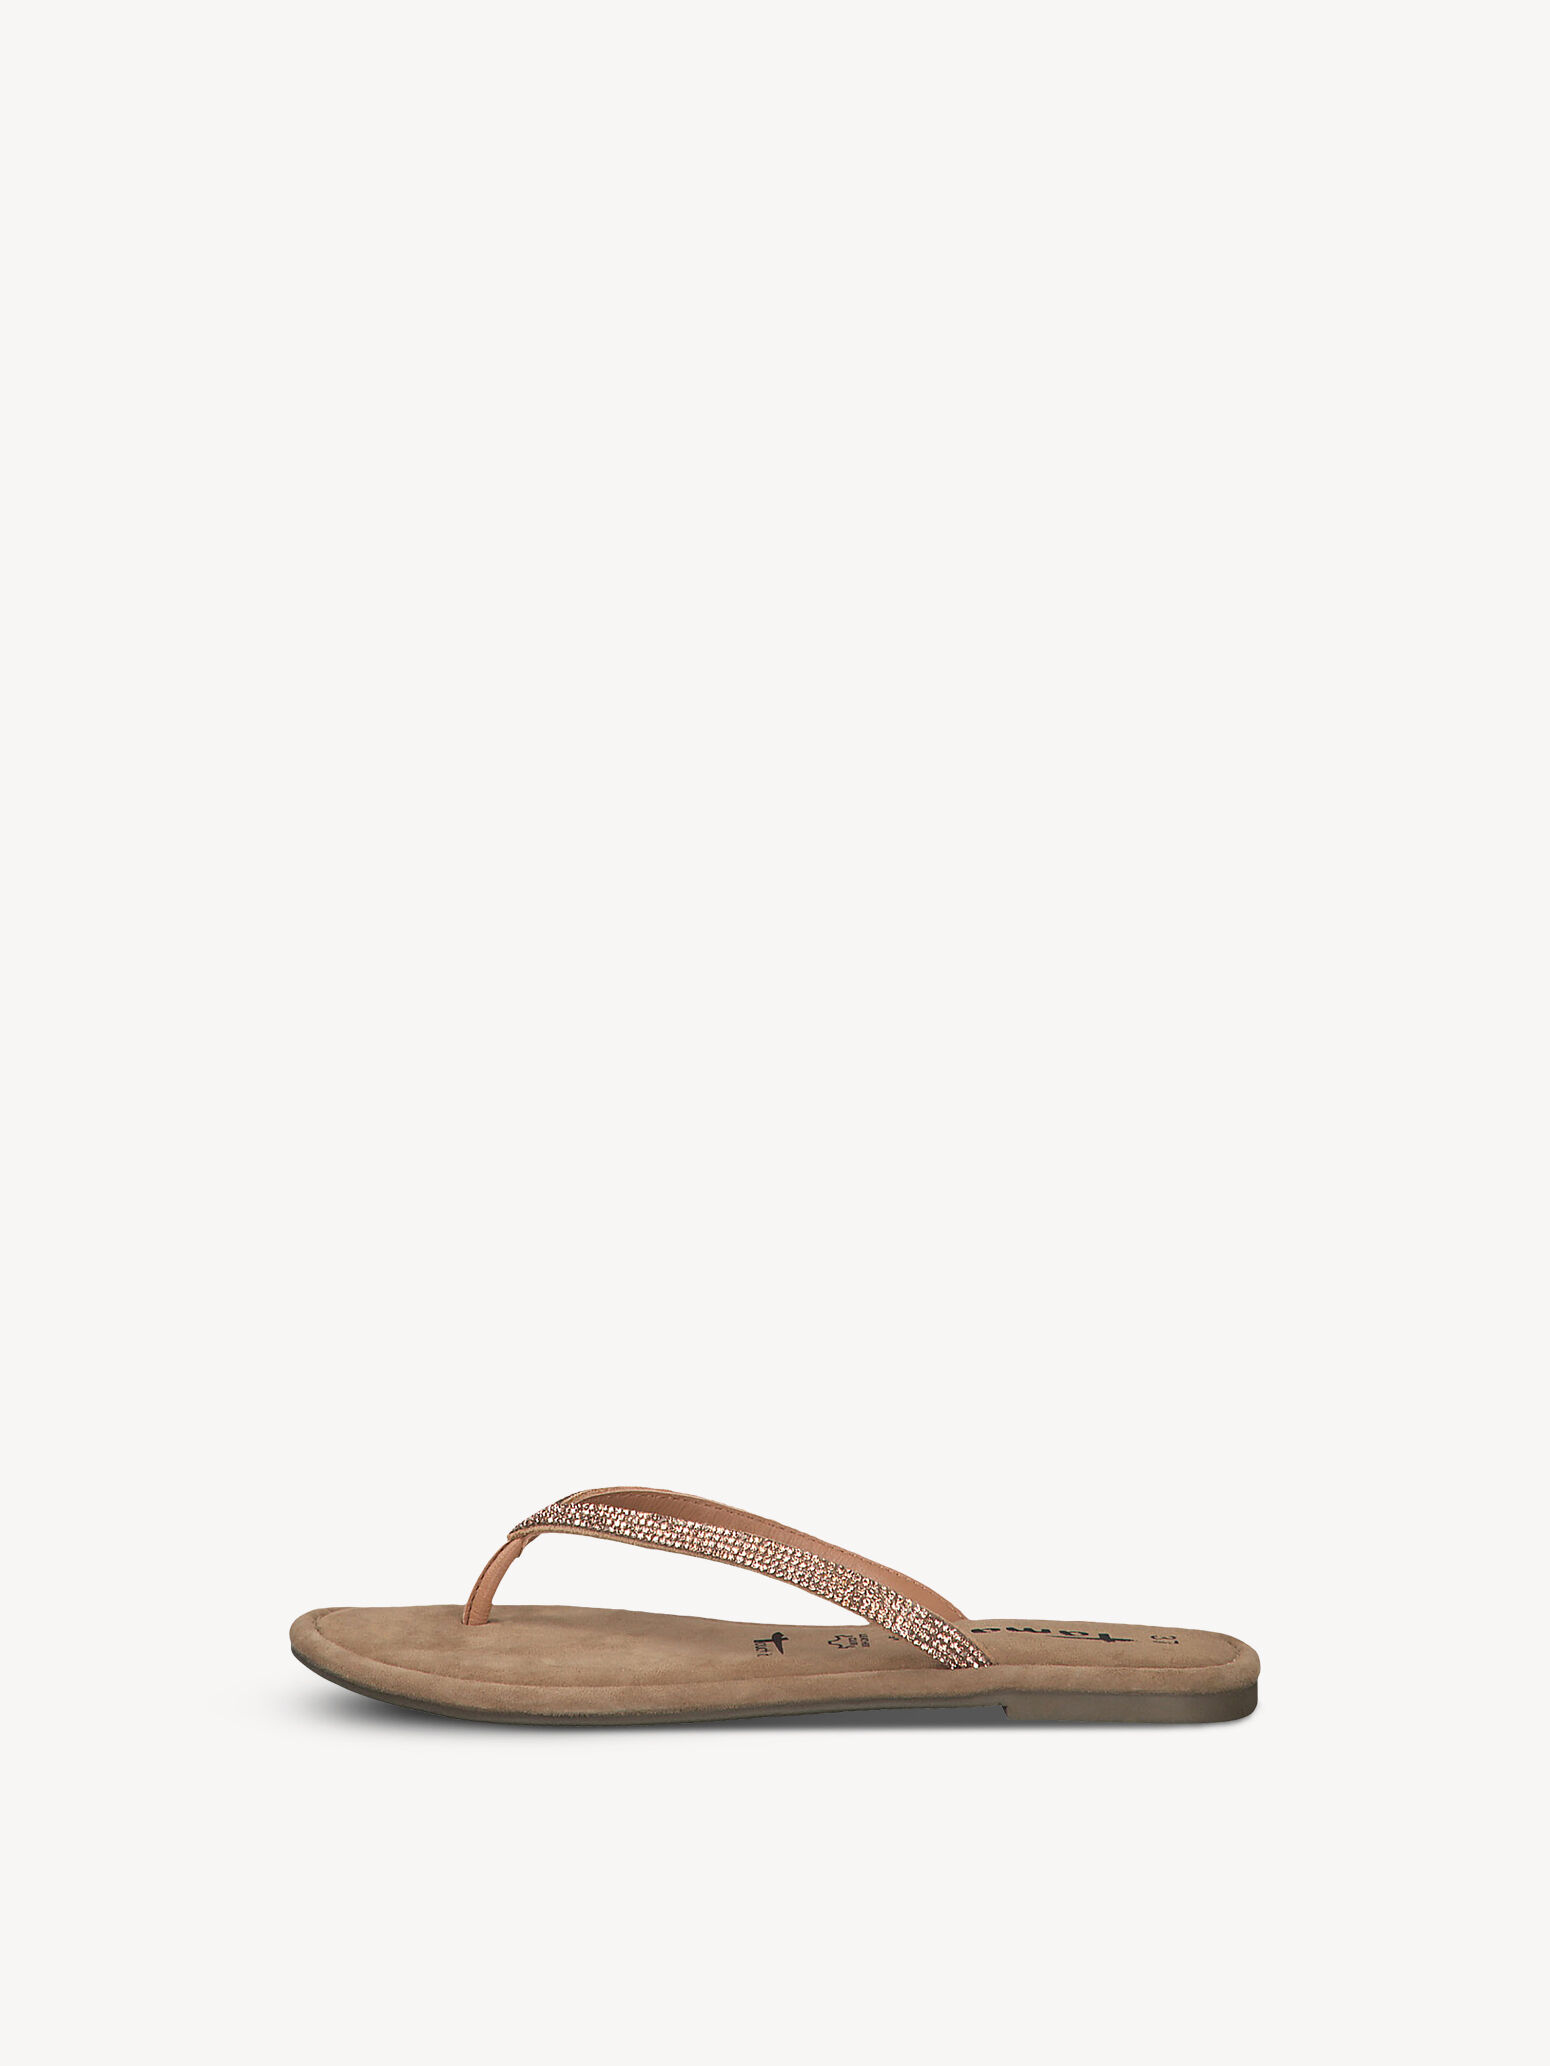 Buy Tamaris Toe post sandals online now!